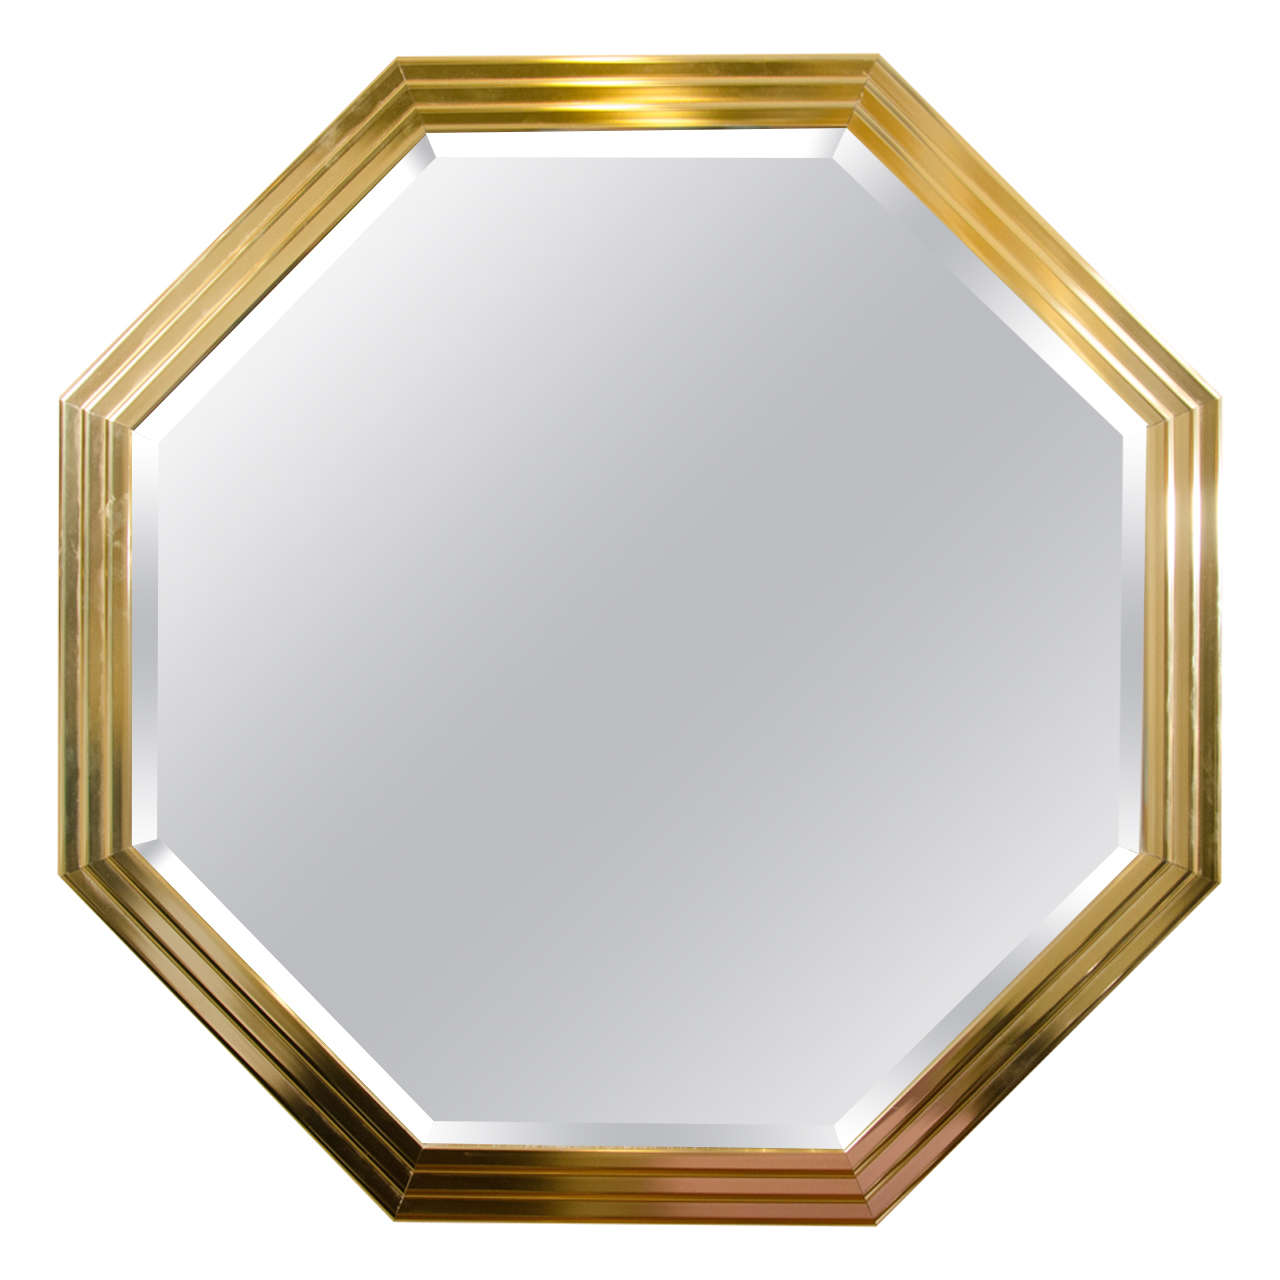 Midcentury octagonal brass wall mirror with beveled edge for Octagon beveled mirror